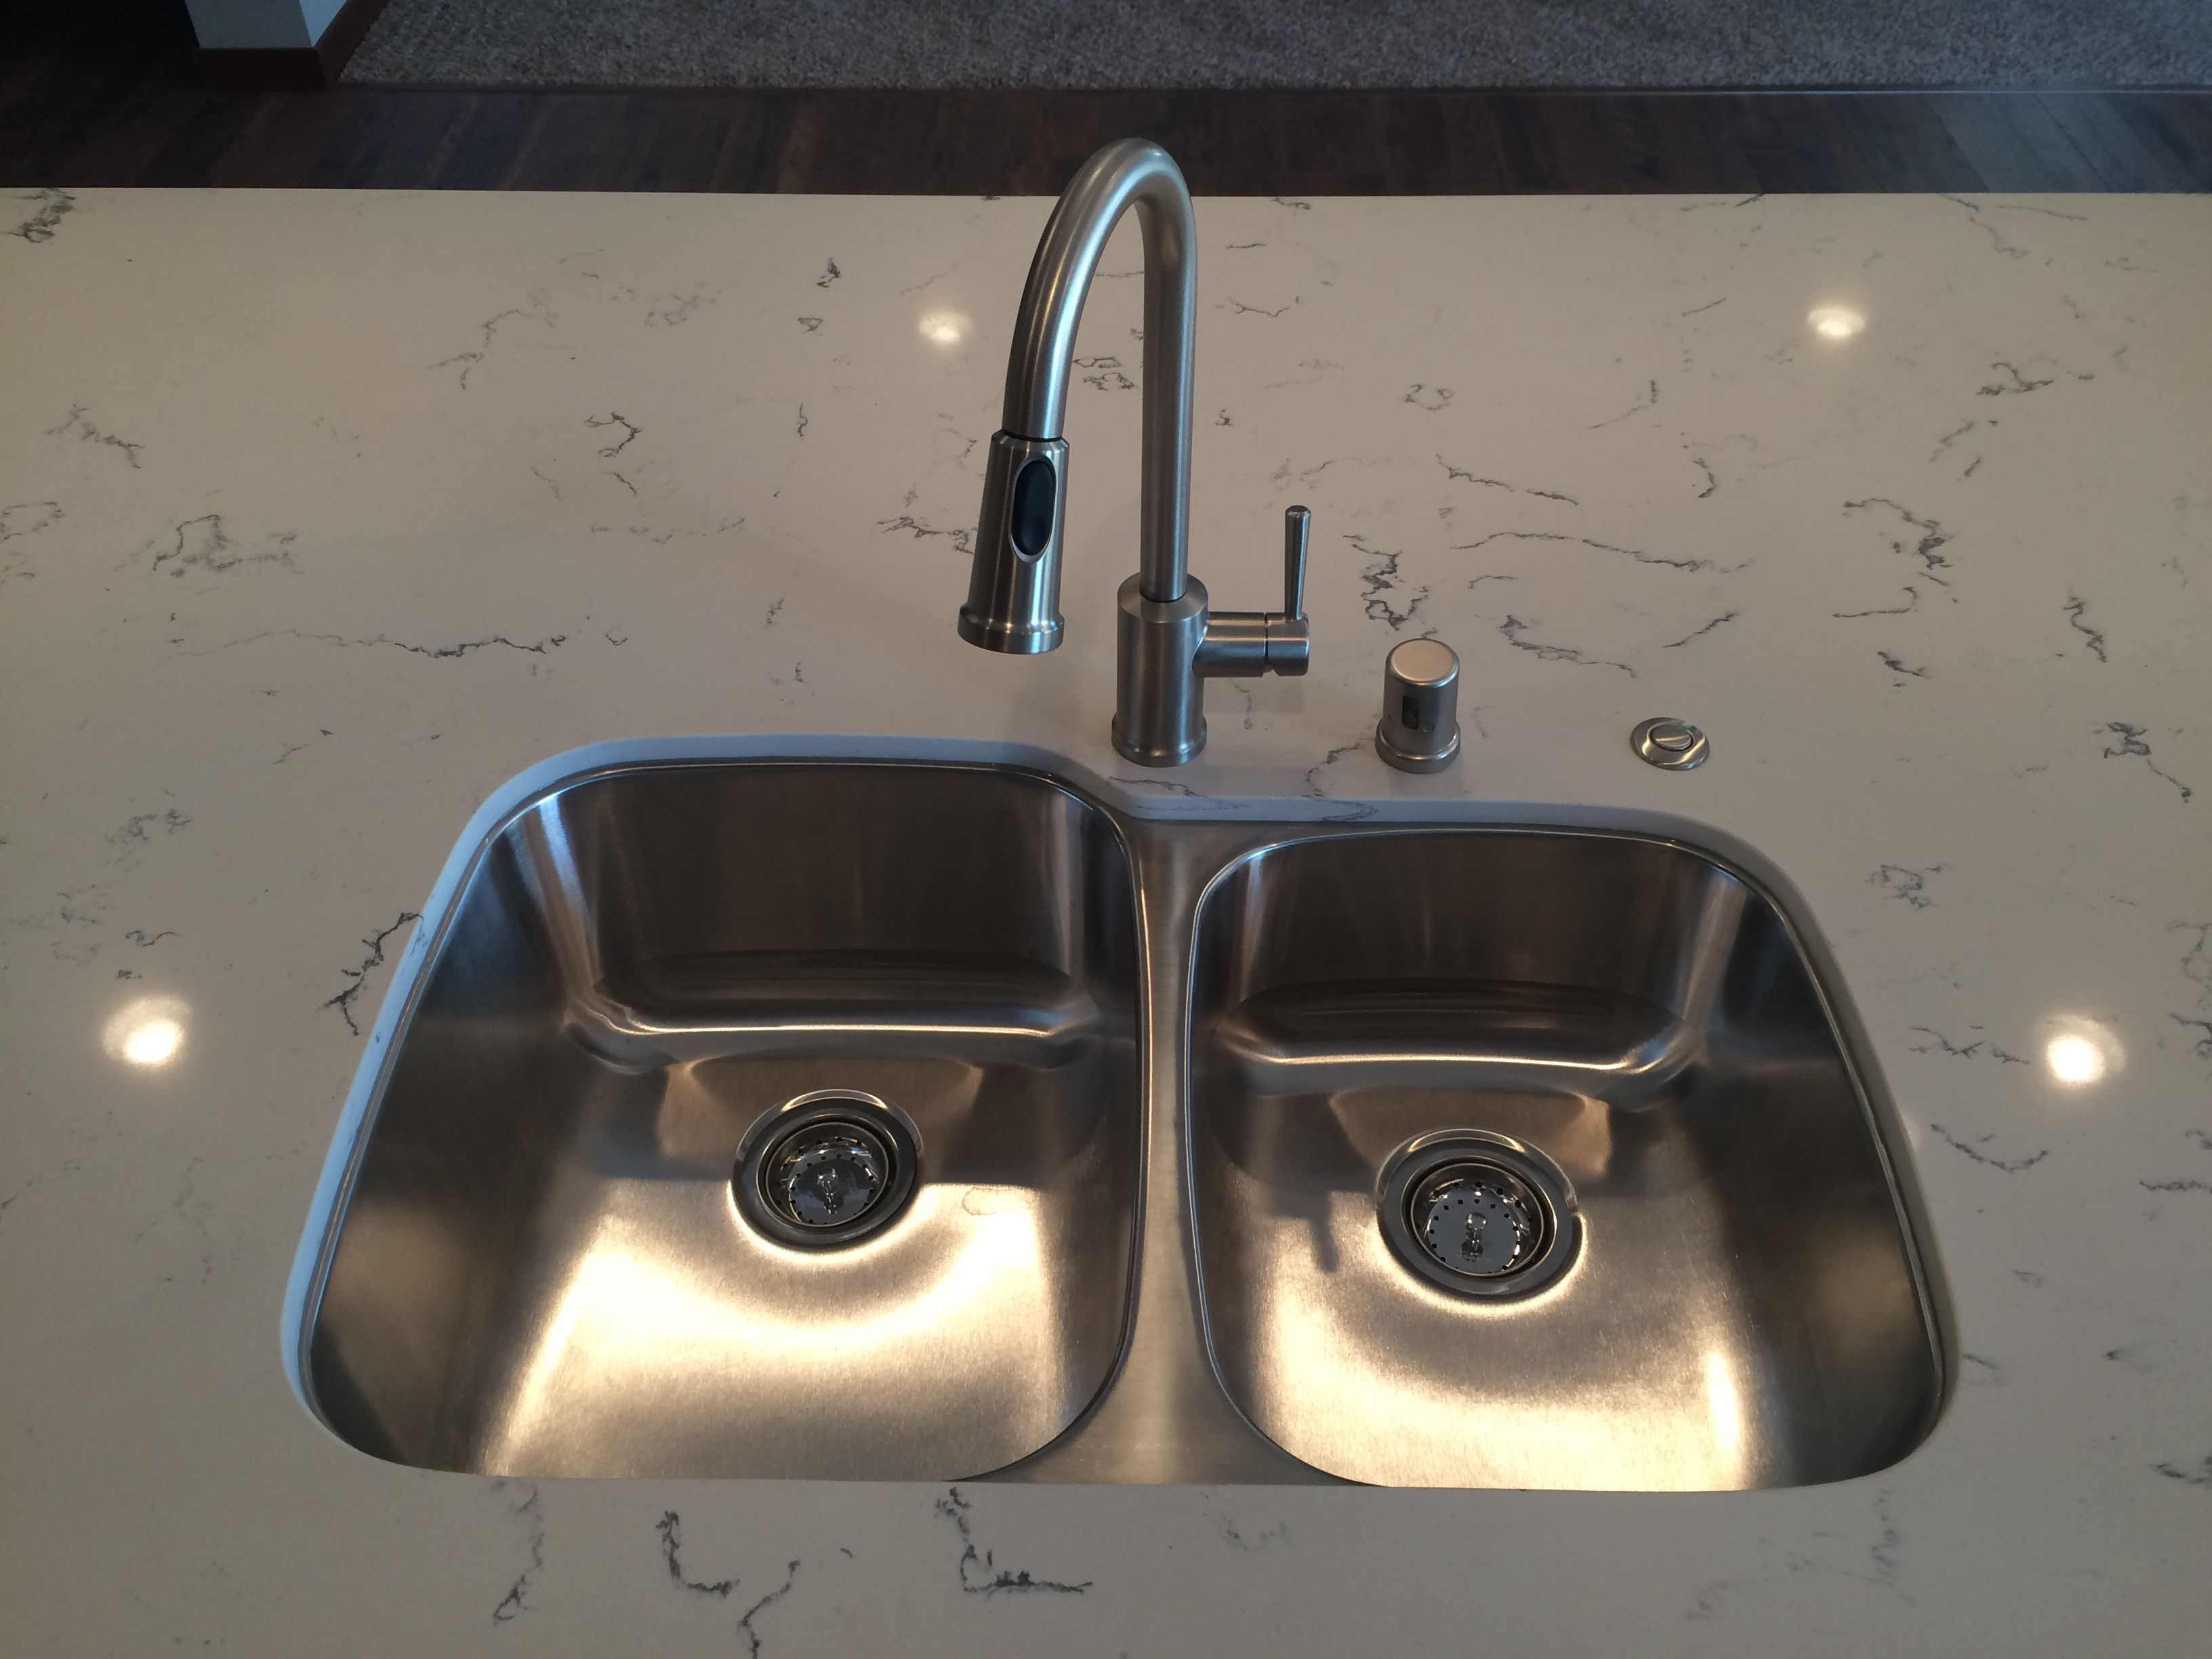 Counter Push Button For The Garbage Disposal For Islands Or To